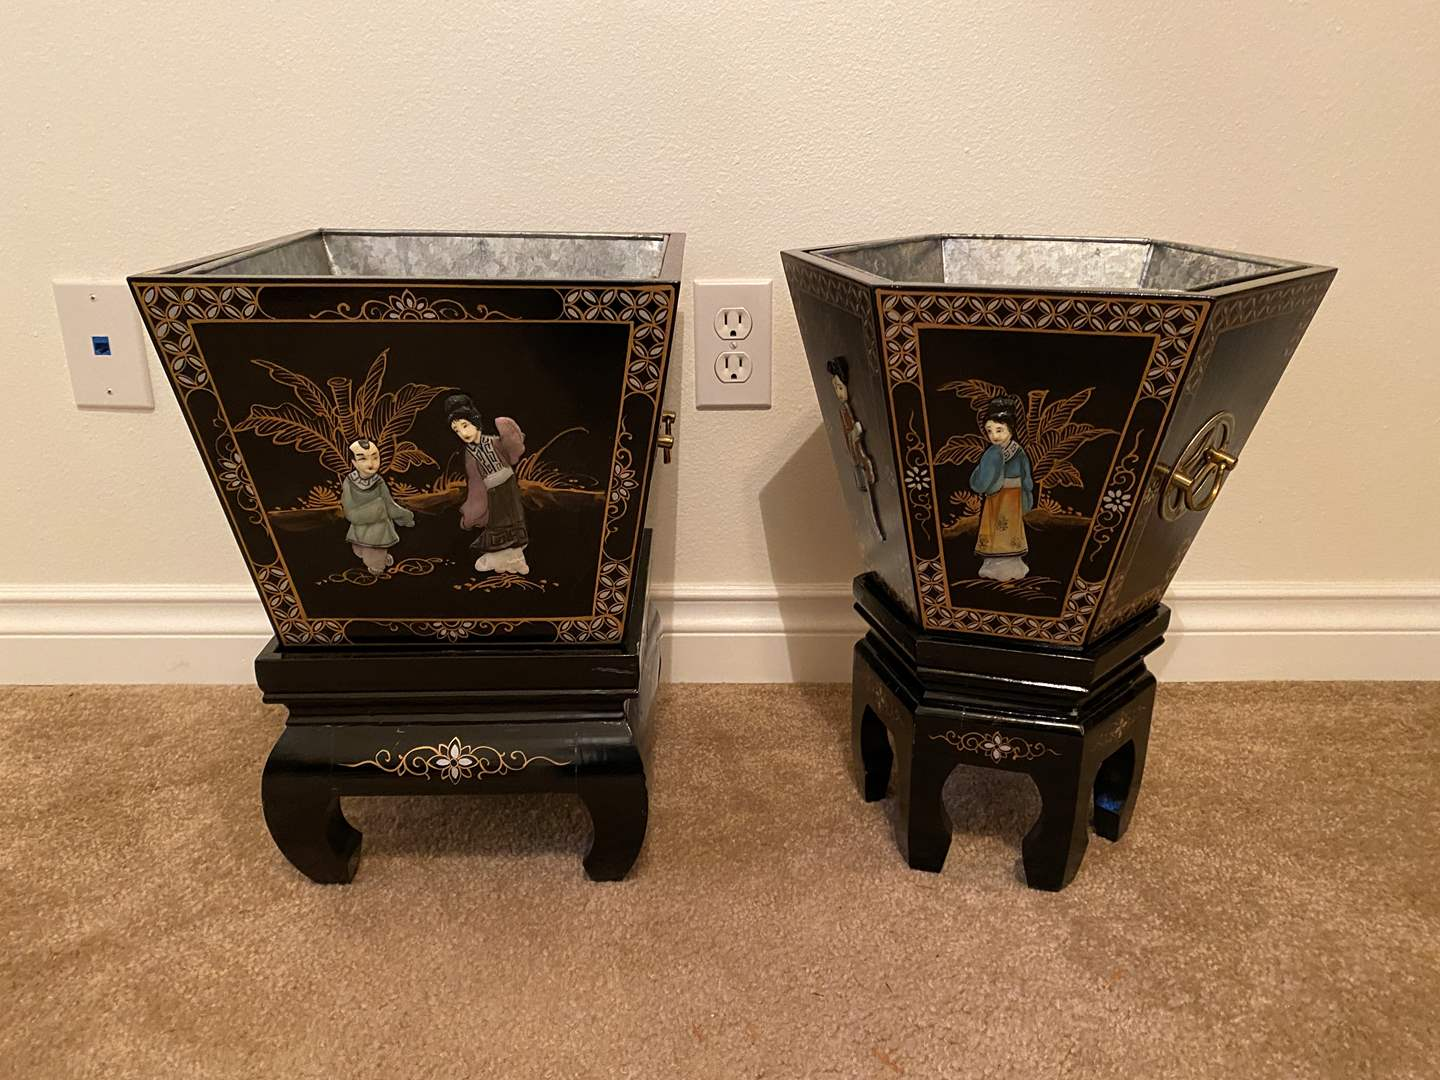 Lot # 5 - Two Ornate 3-D Asian Planters on Stands (main image)